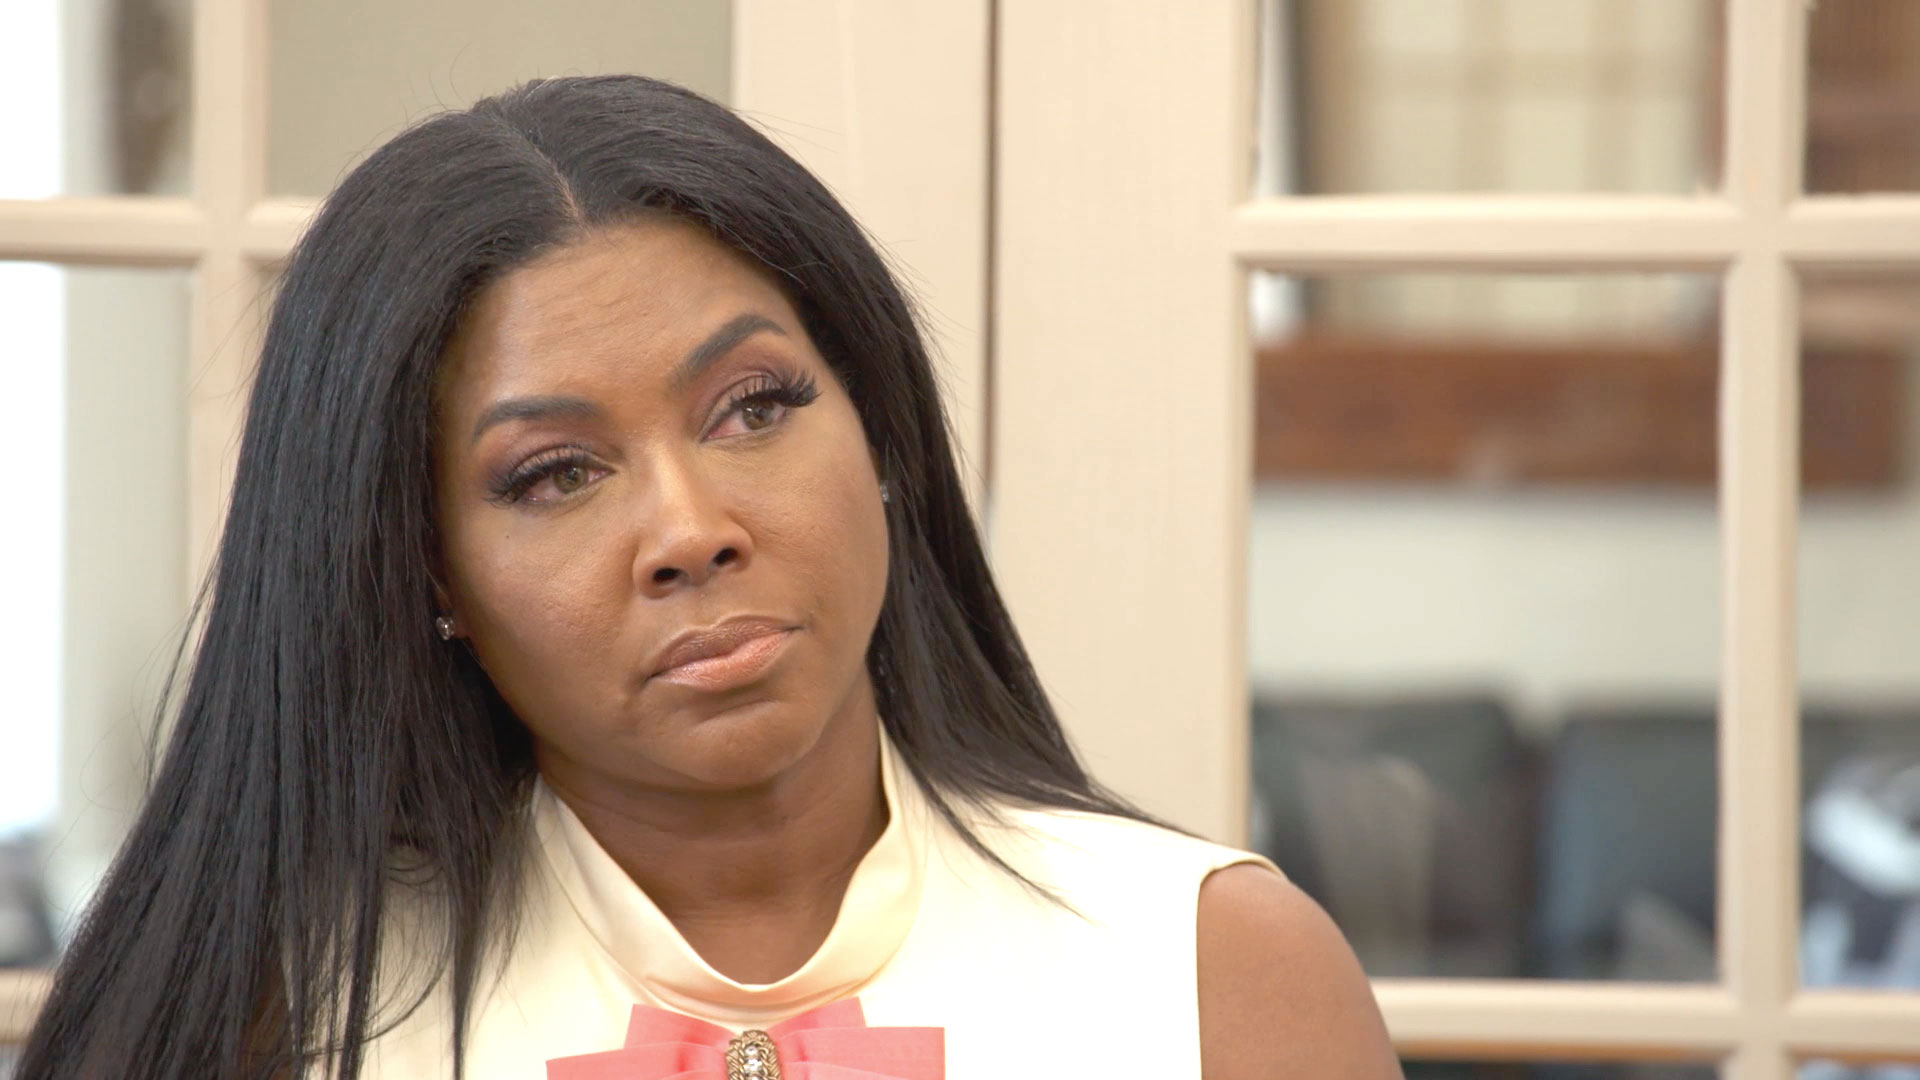 Kenya Moore's Lawyer Tells Her to Stop Being Self-Deprecating